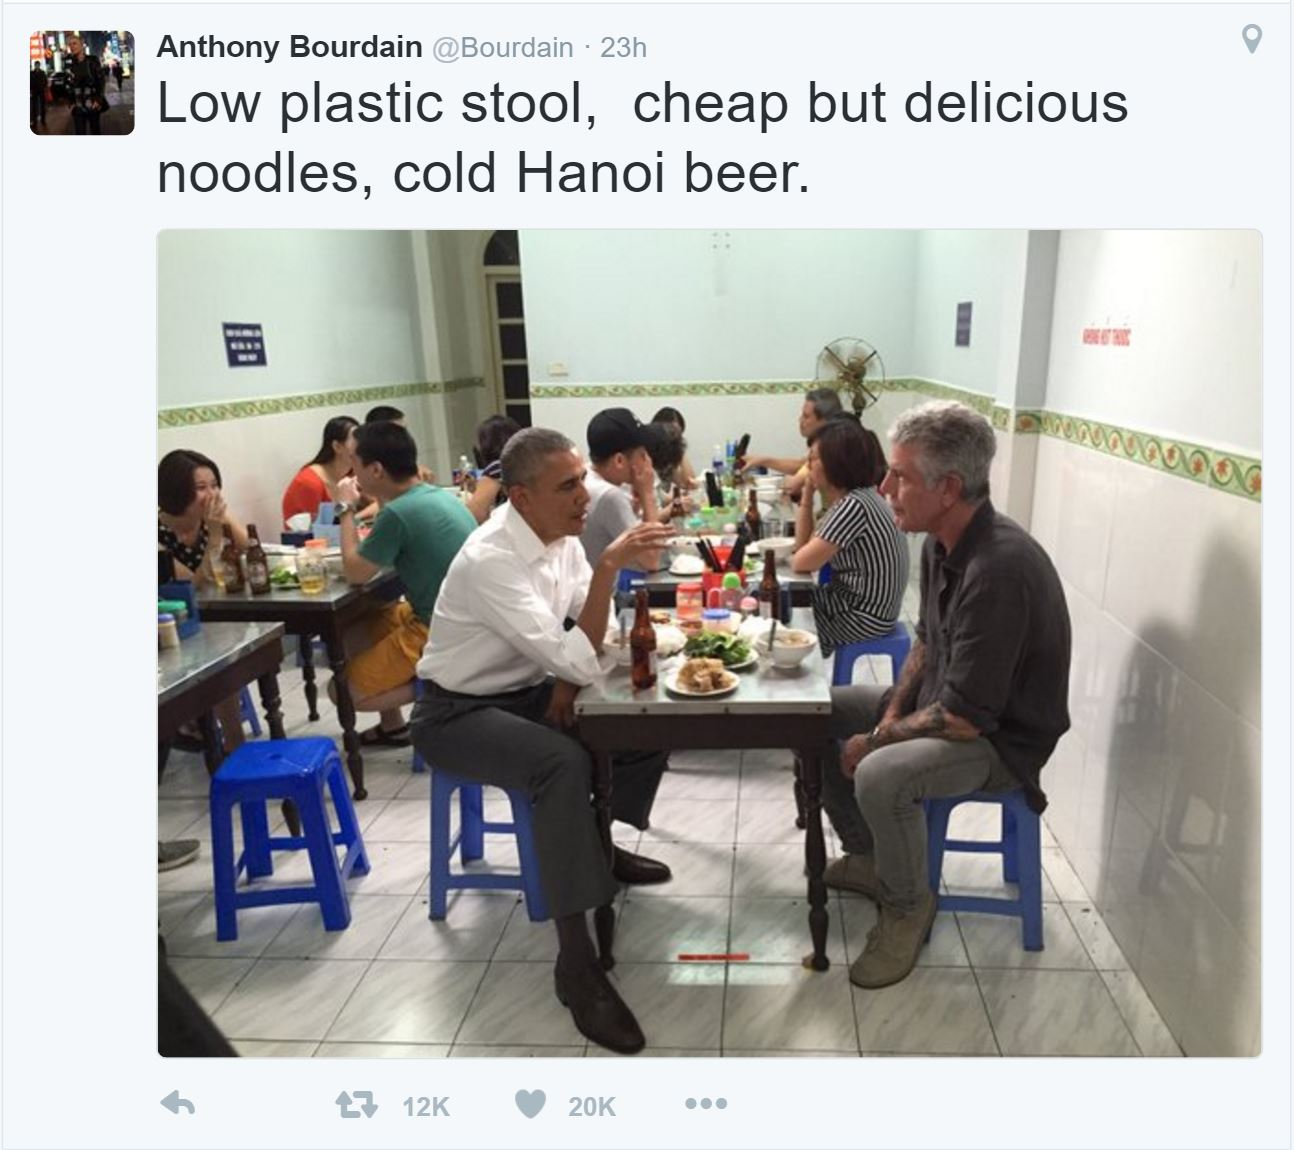 Anthony Bourdain tweet